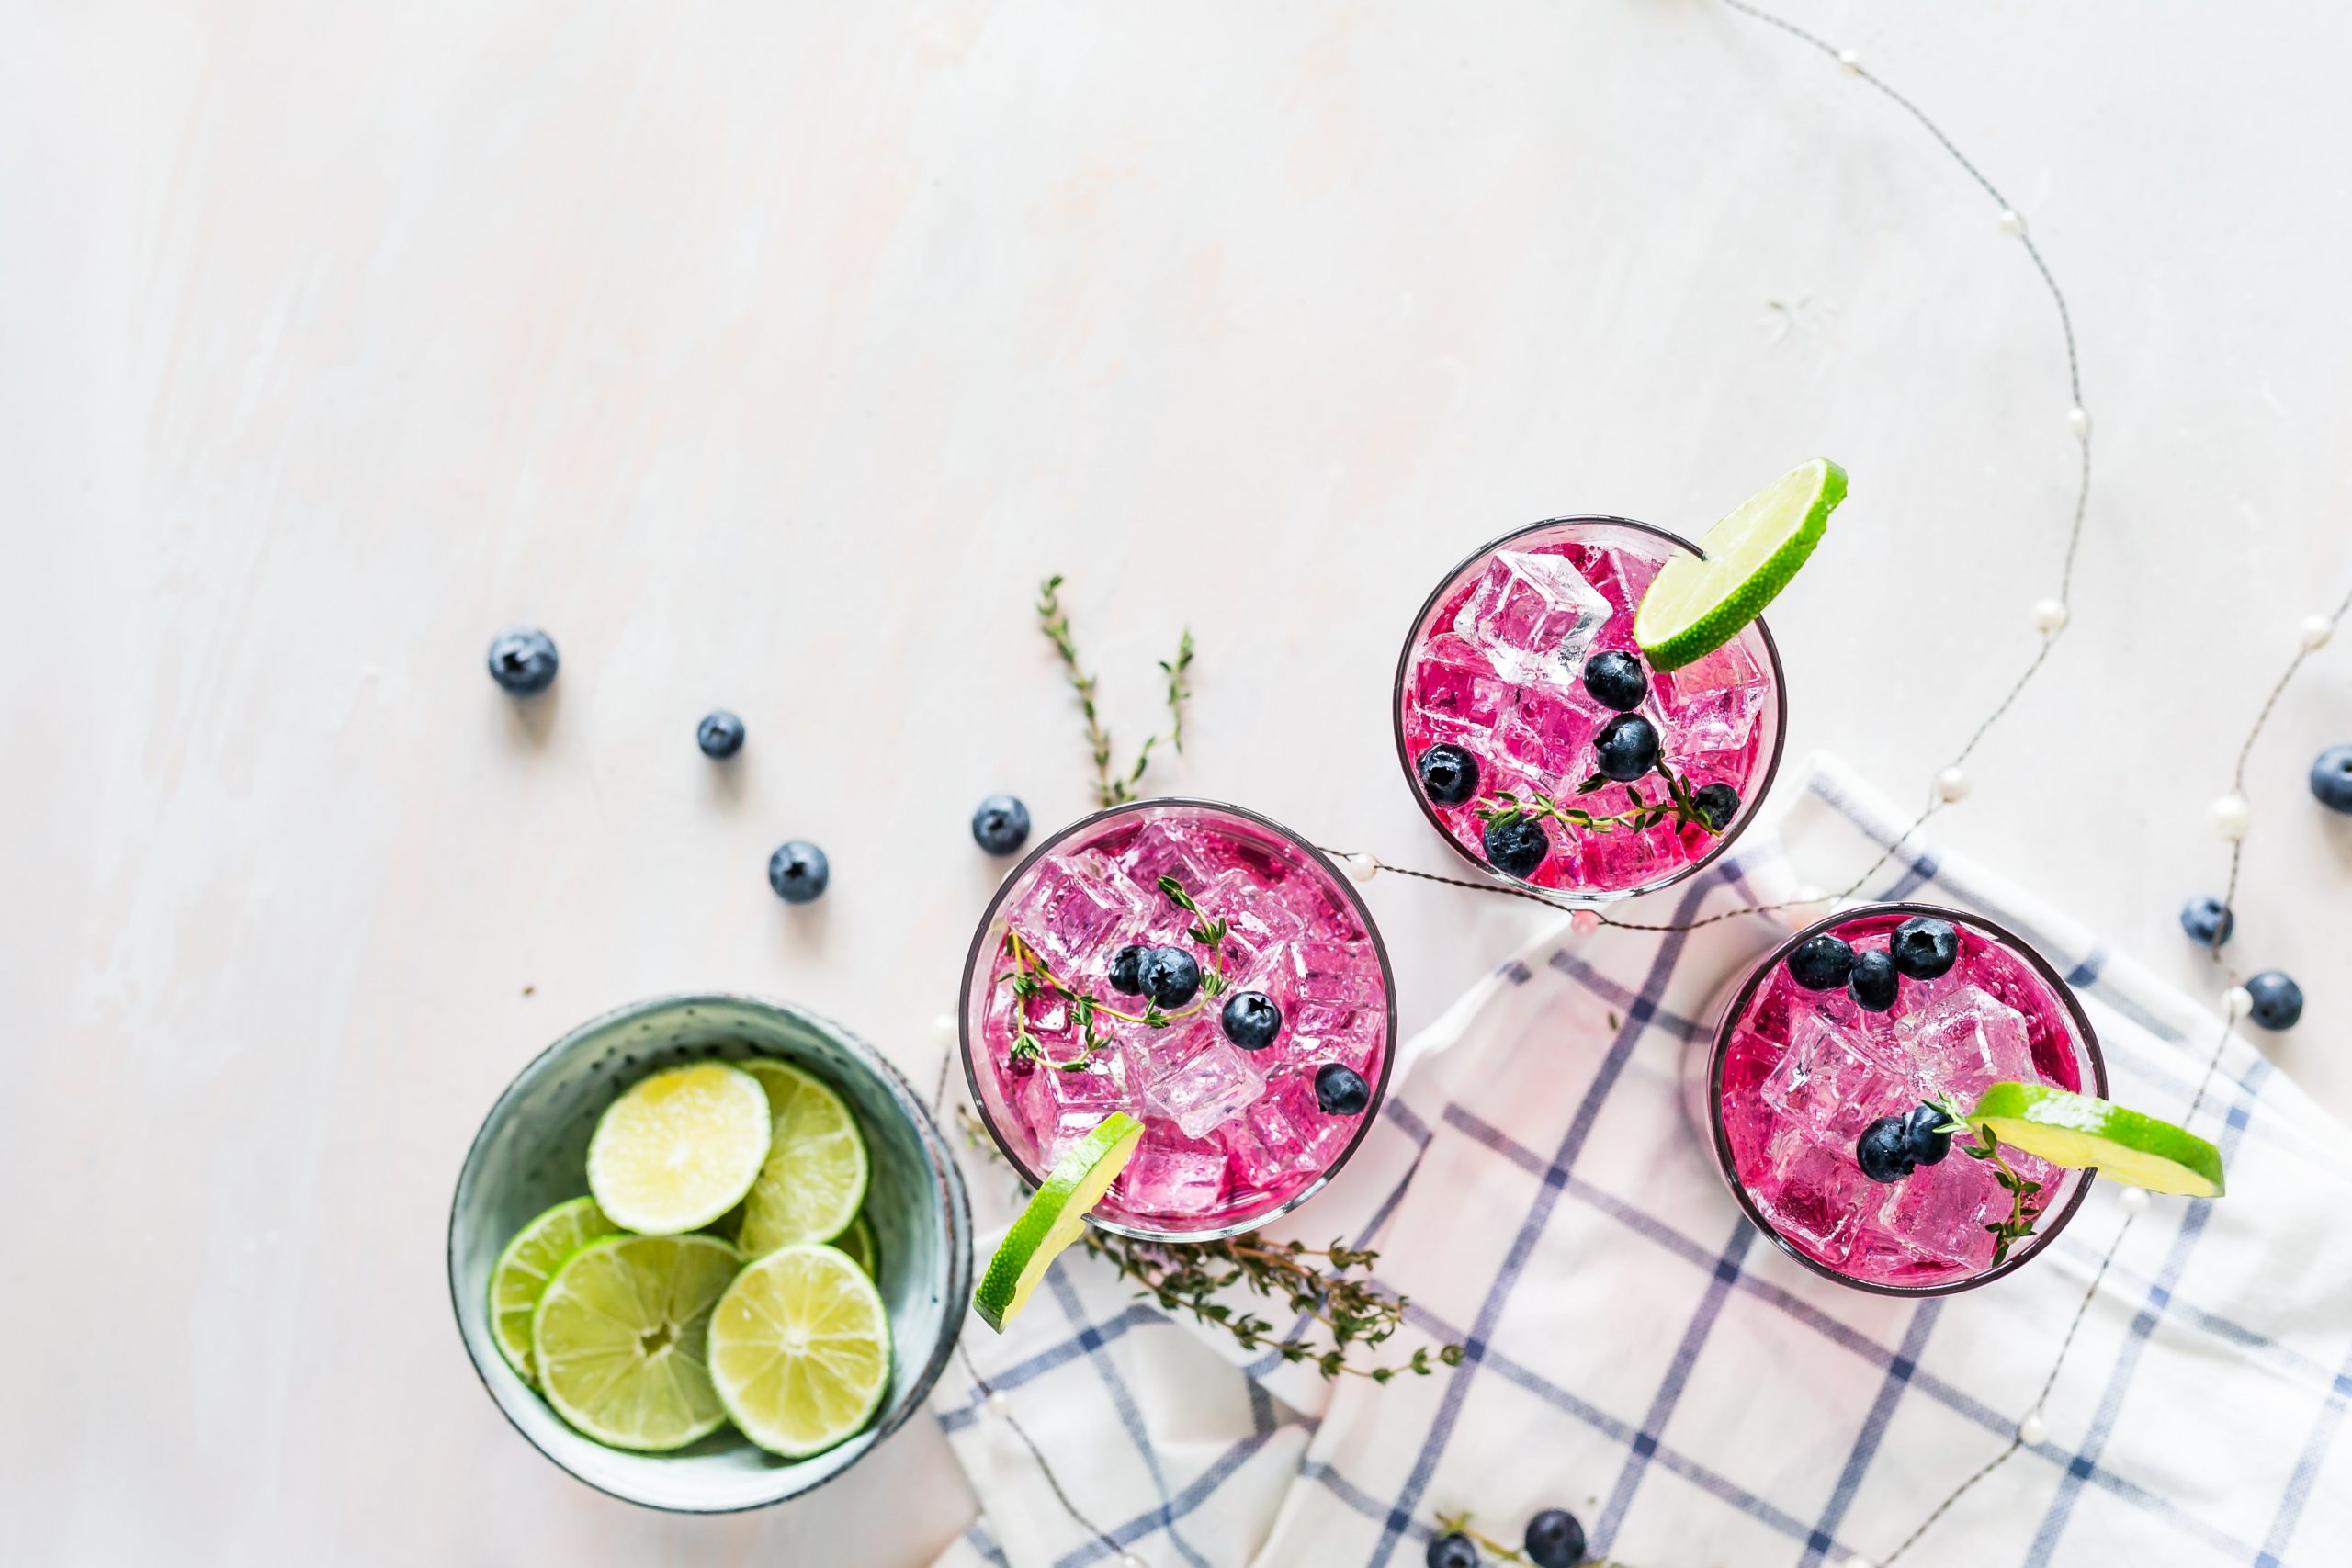 blueberry cocktail with garnish